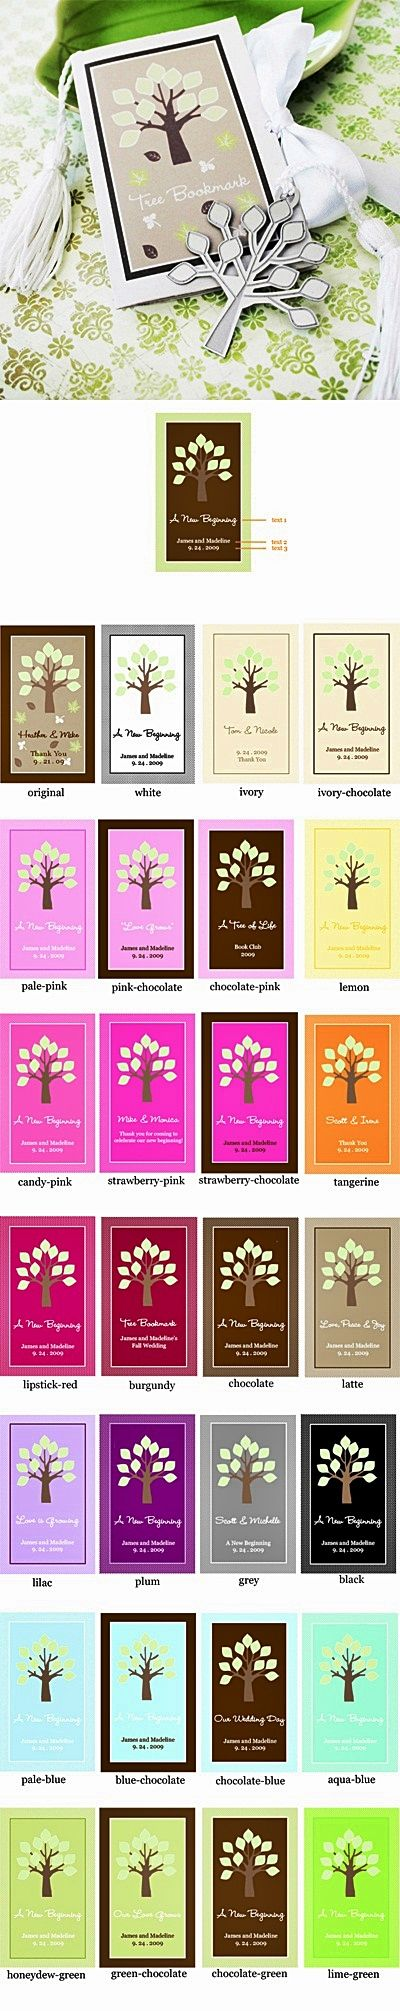 An Awesome Start Tree-Shaped Bookmark | Bookmarks & Letter Openers ...